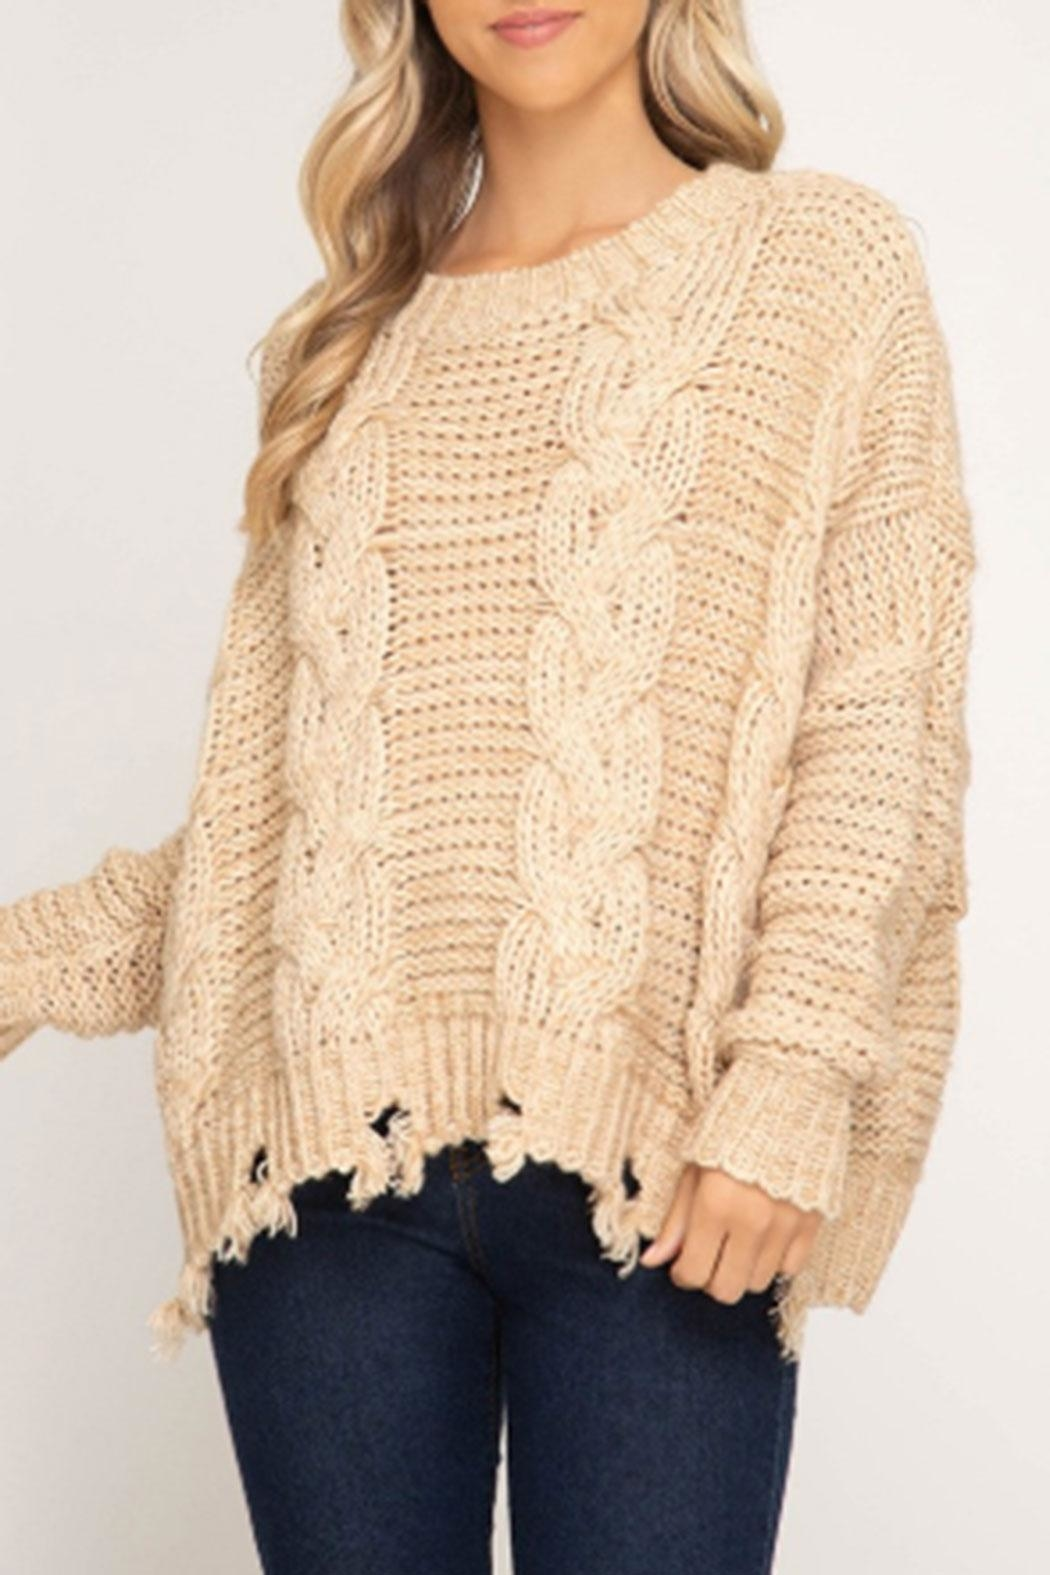 She + Sky Cable-Knit Distressed Sweater - Main Image